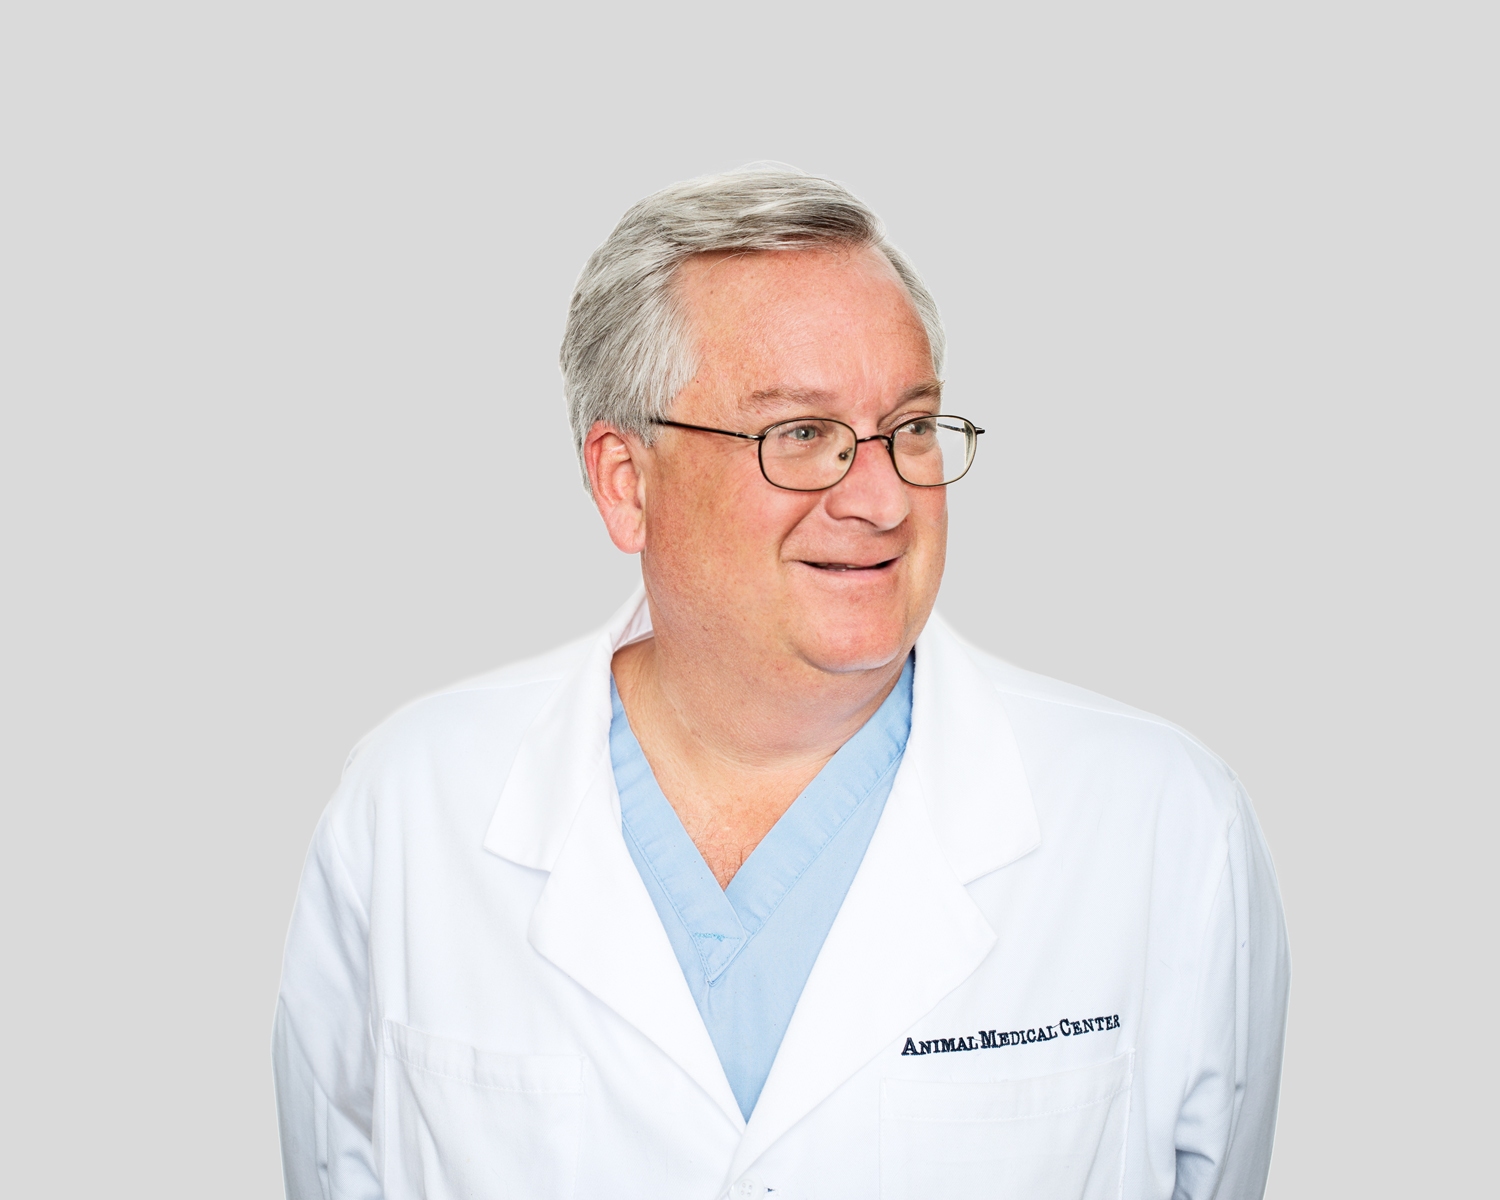 Dr. Dan Carmichael of the Animal Medical Center in New York City